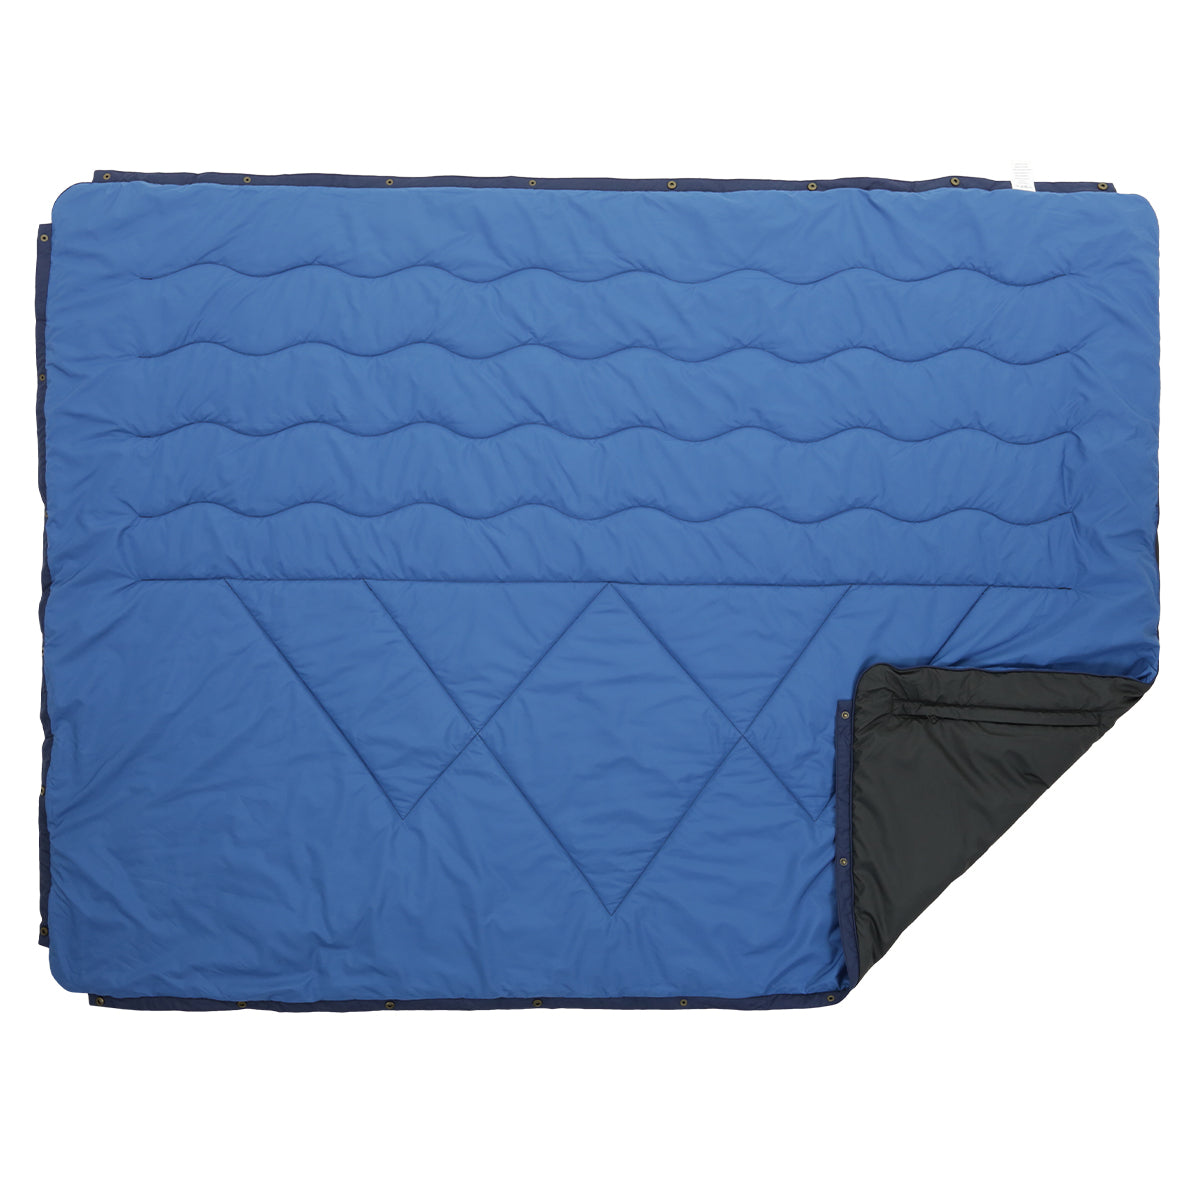 Nomadics 1 Person Insulated Blanket - Deep Water Blue & Charcoal image 4